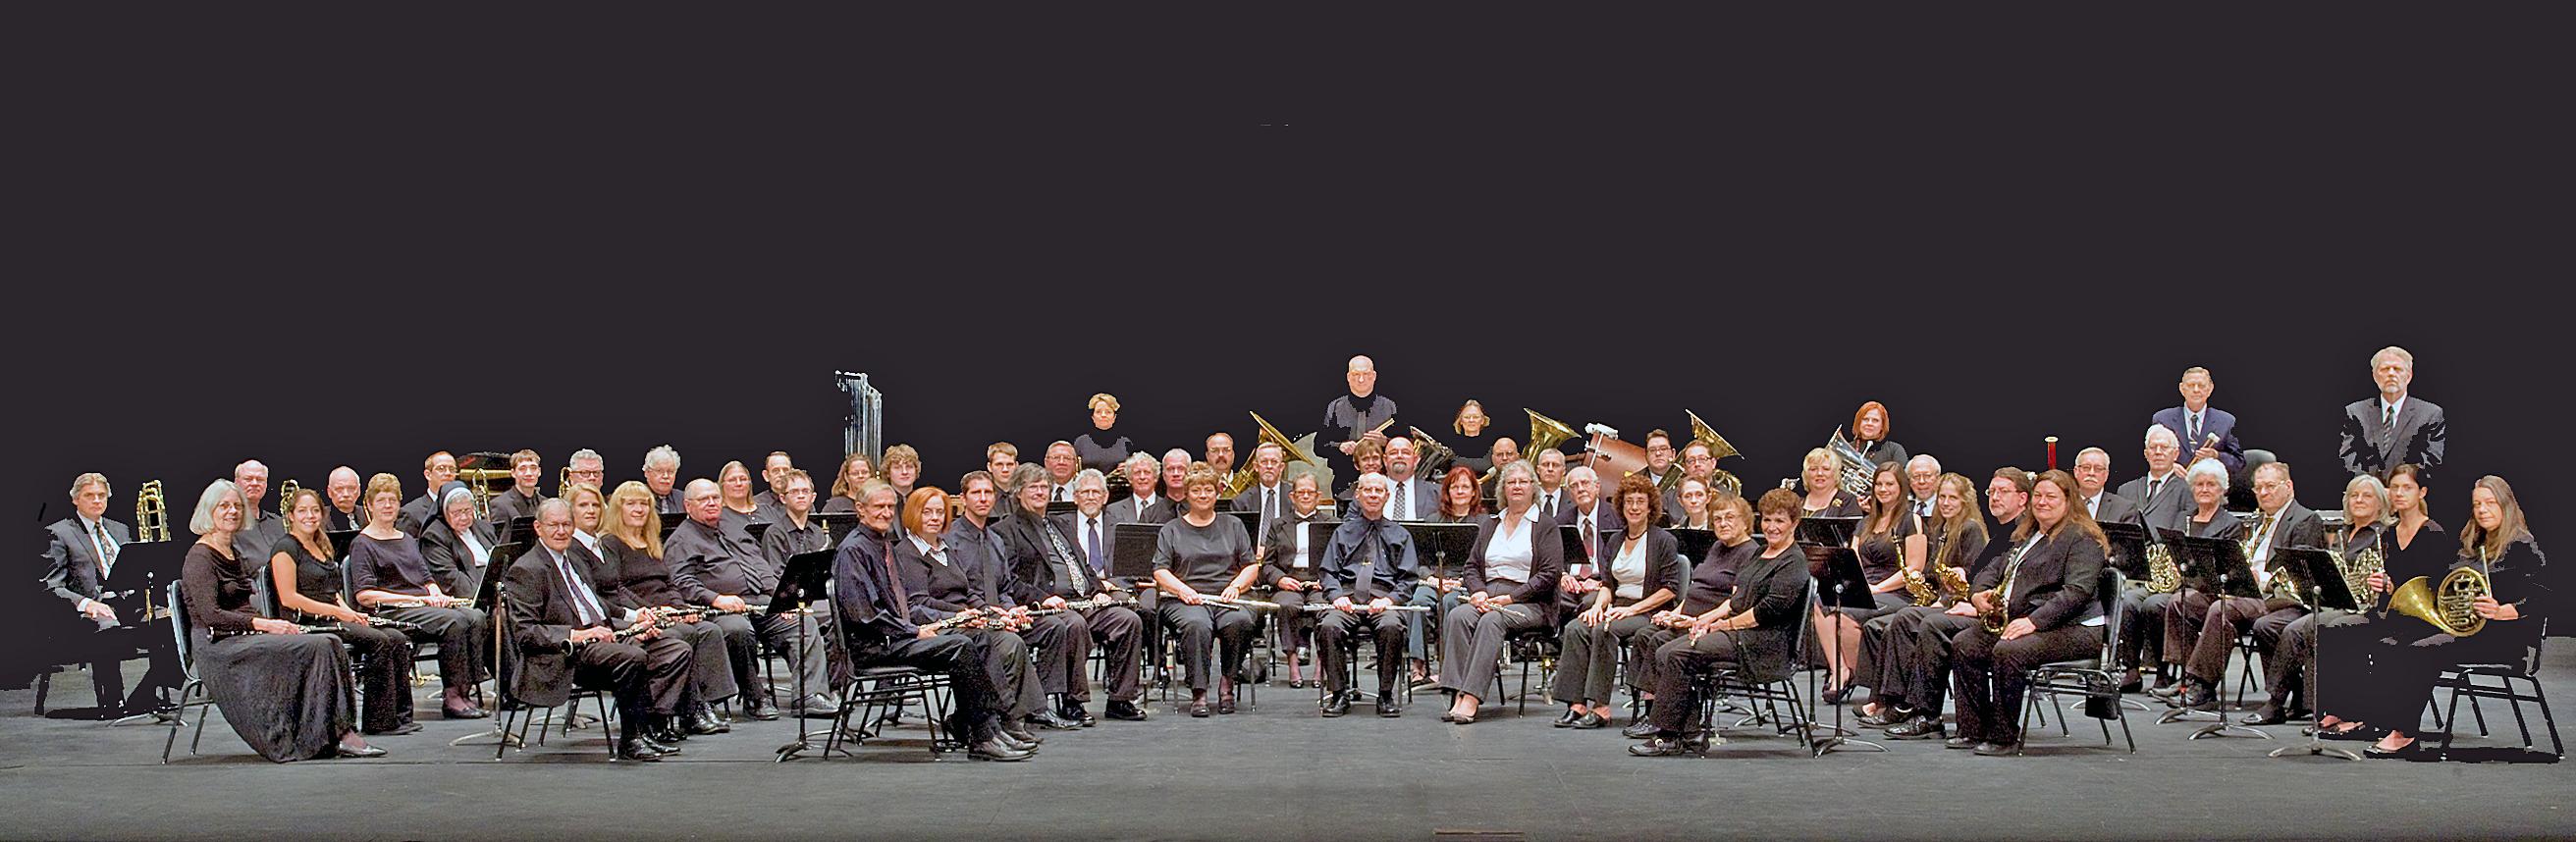 Tulsa Community Band At 2013